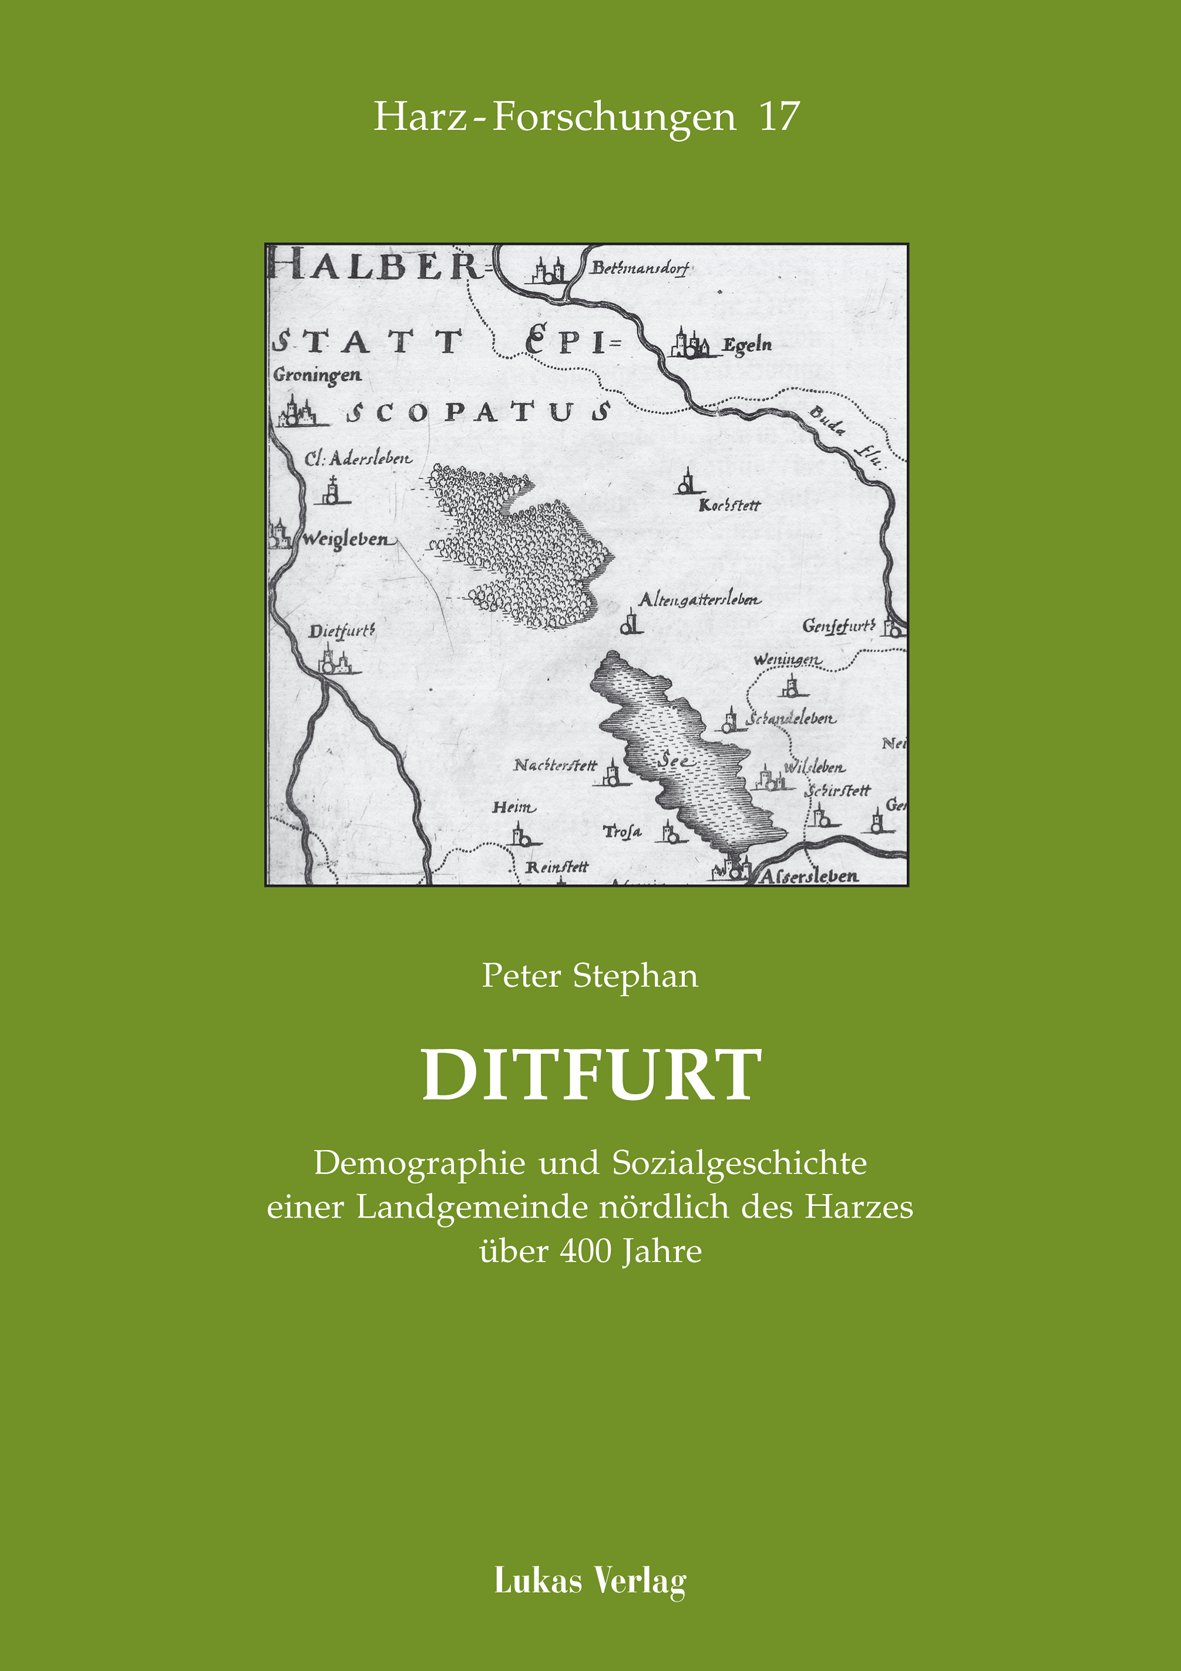 Ditfurt